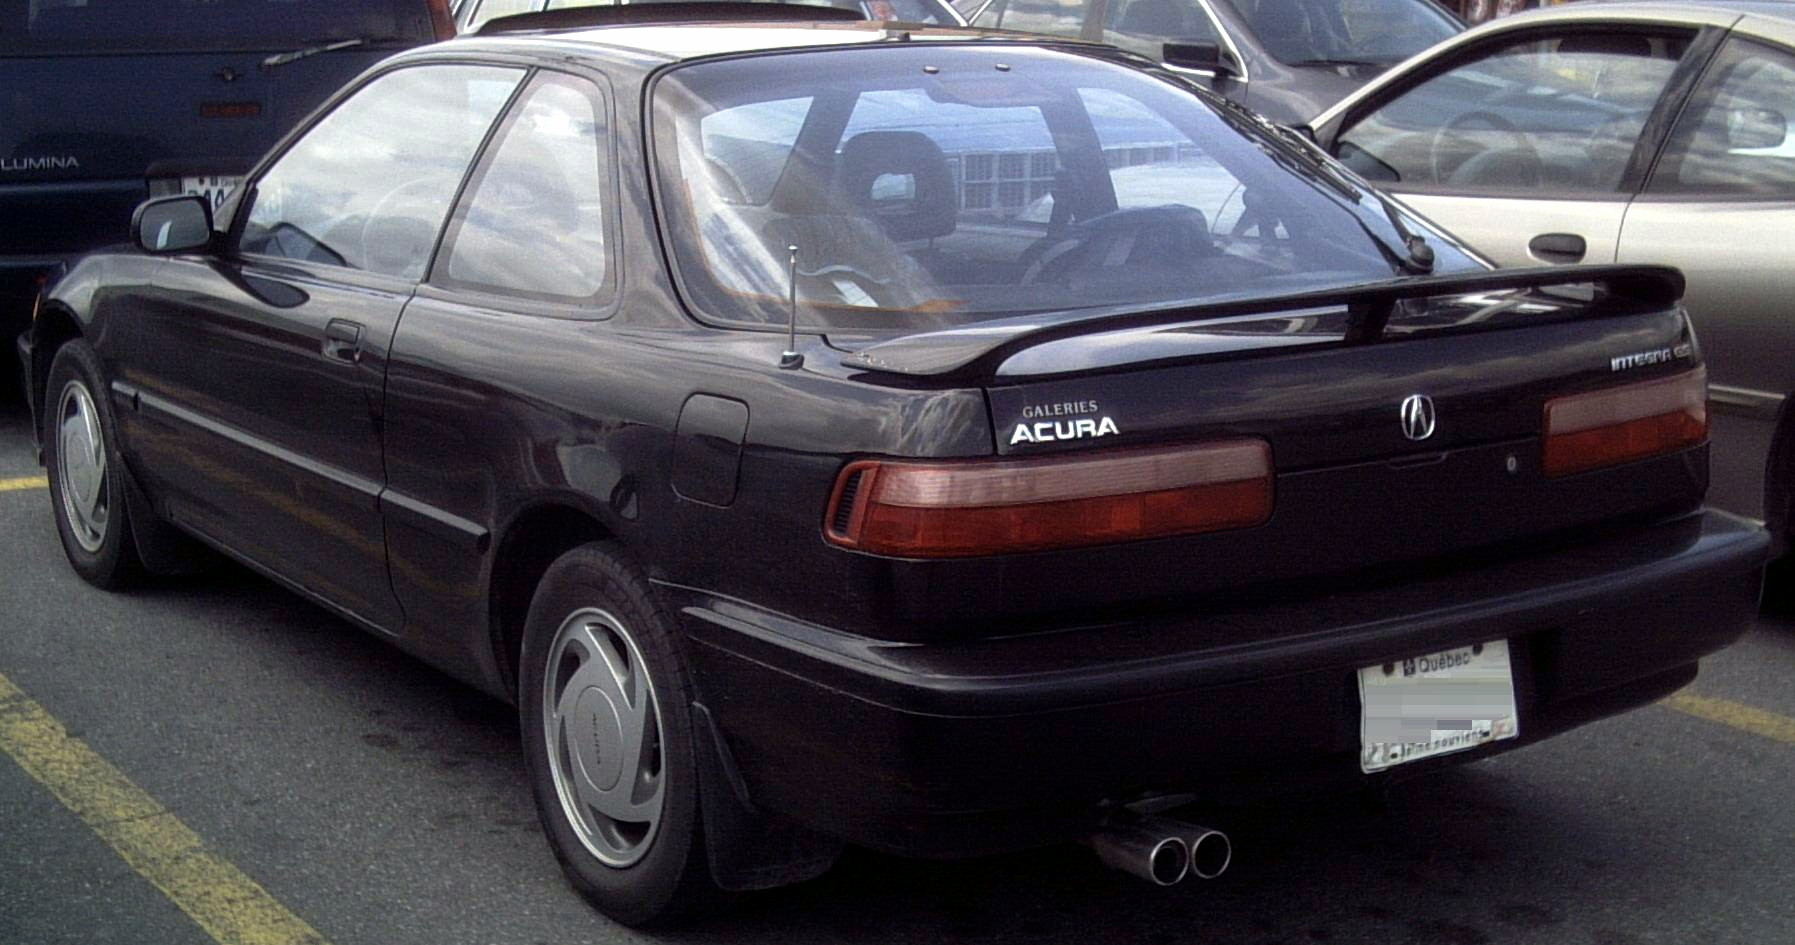 1991 acura emblems integra and trim emblems up top the only the 1990 and 91 share in common for the rear end are the tailights clear signal and reverse